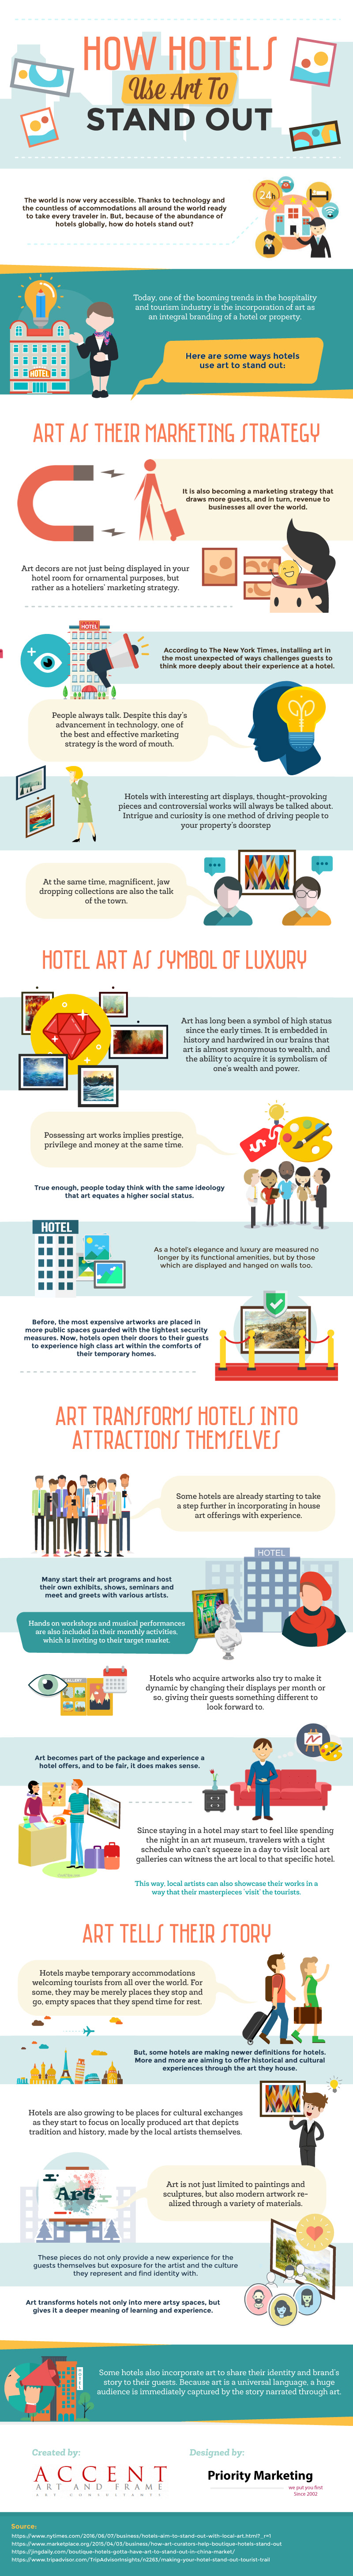 How Hotels Use Art to Stand Out [Infographic]